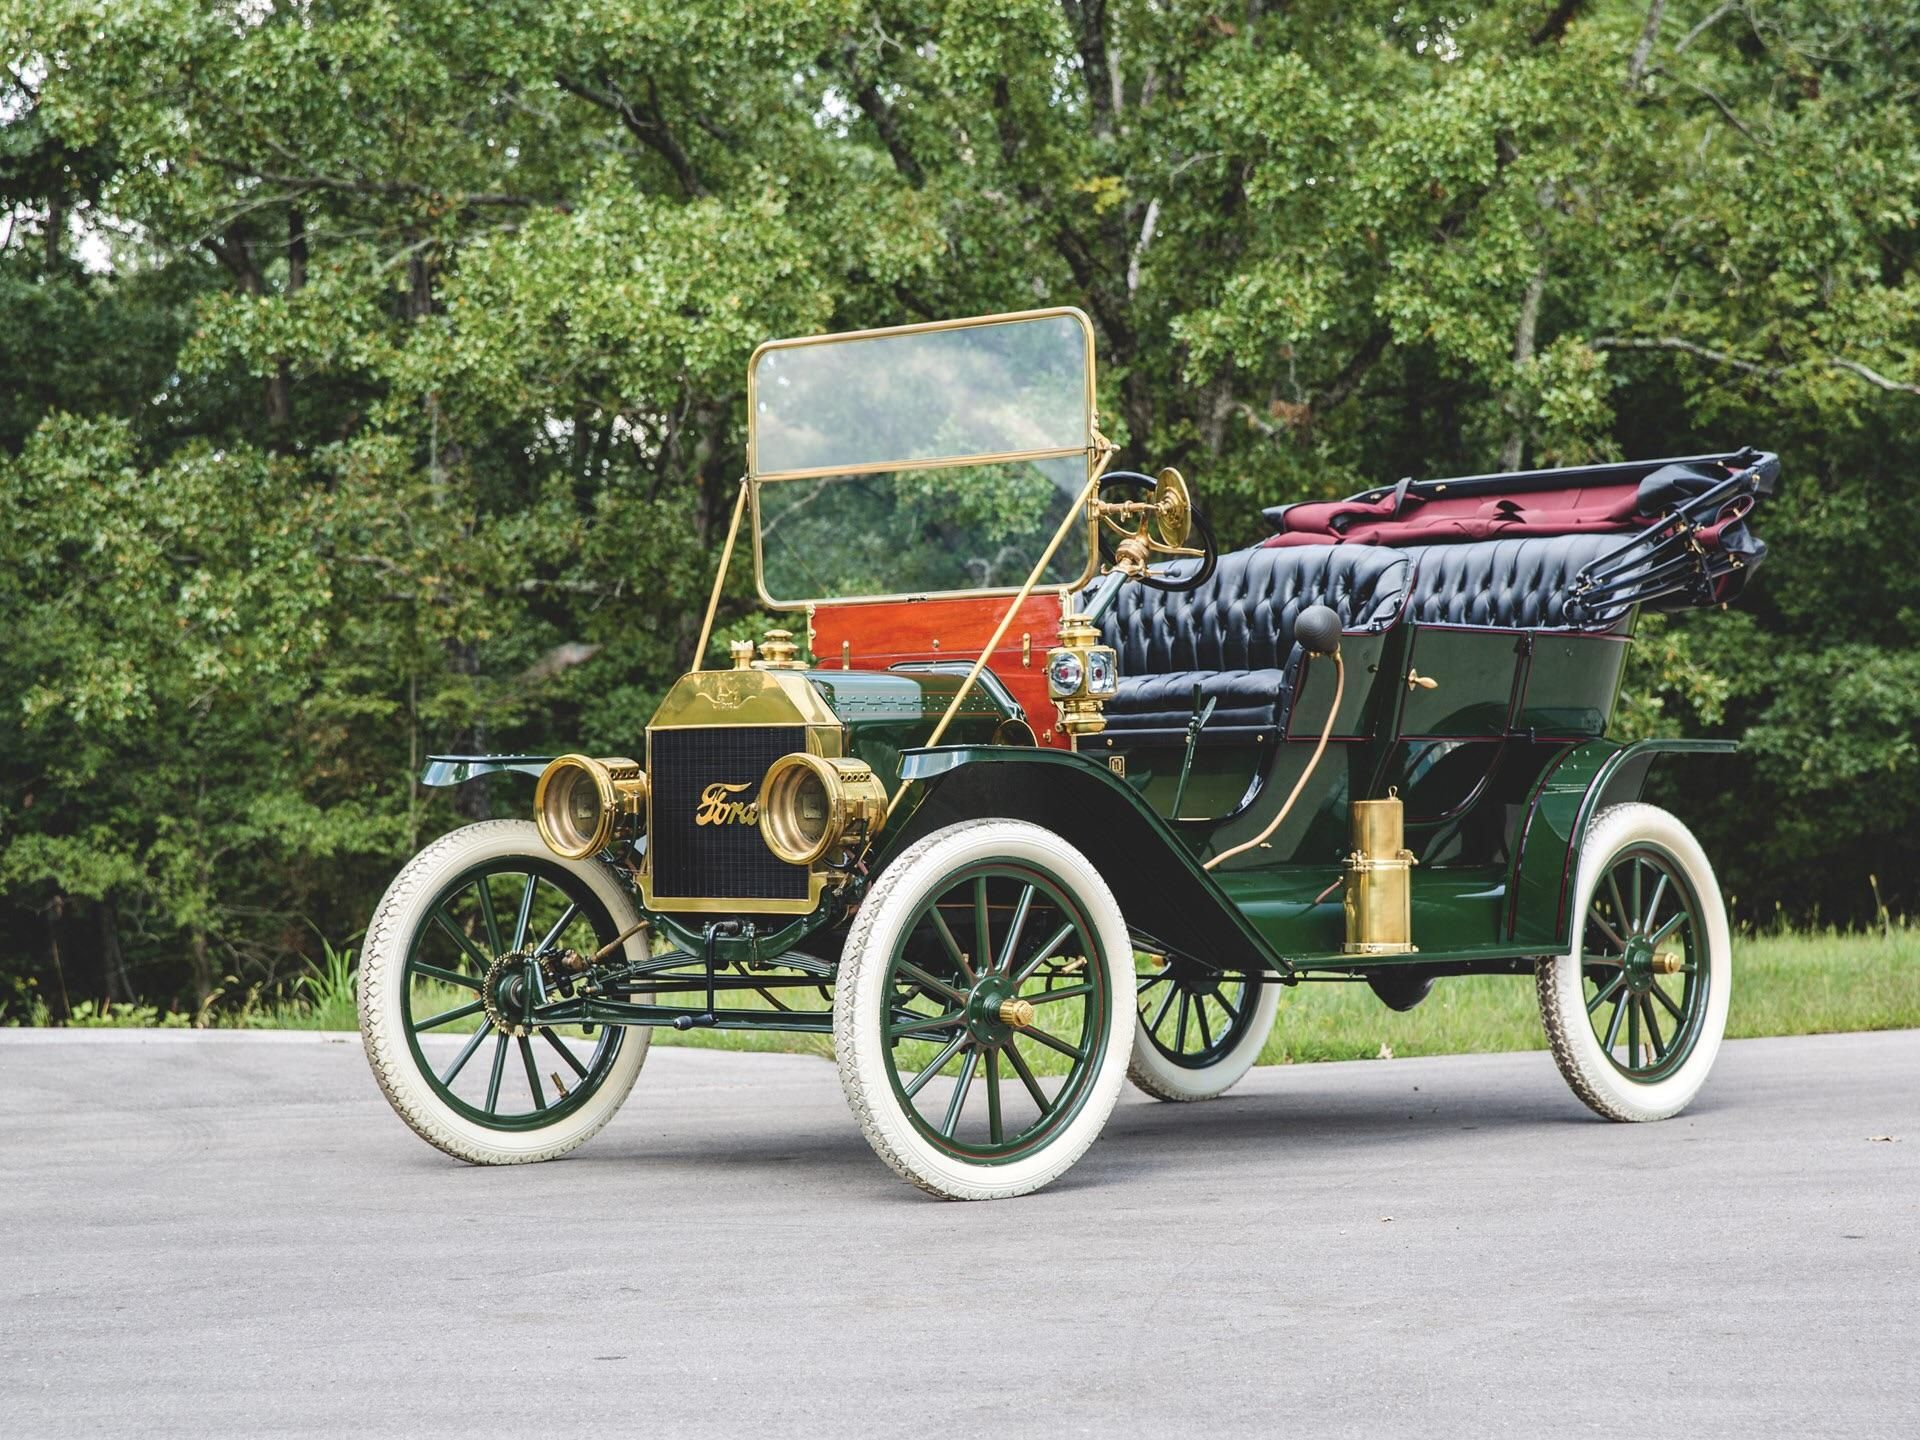 1910 Ford Model T Touring Check More At Https Www Evmore Net English 1910 Ford Model T Tour Ford Models Model T Car Ford